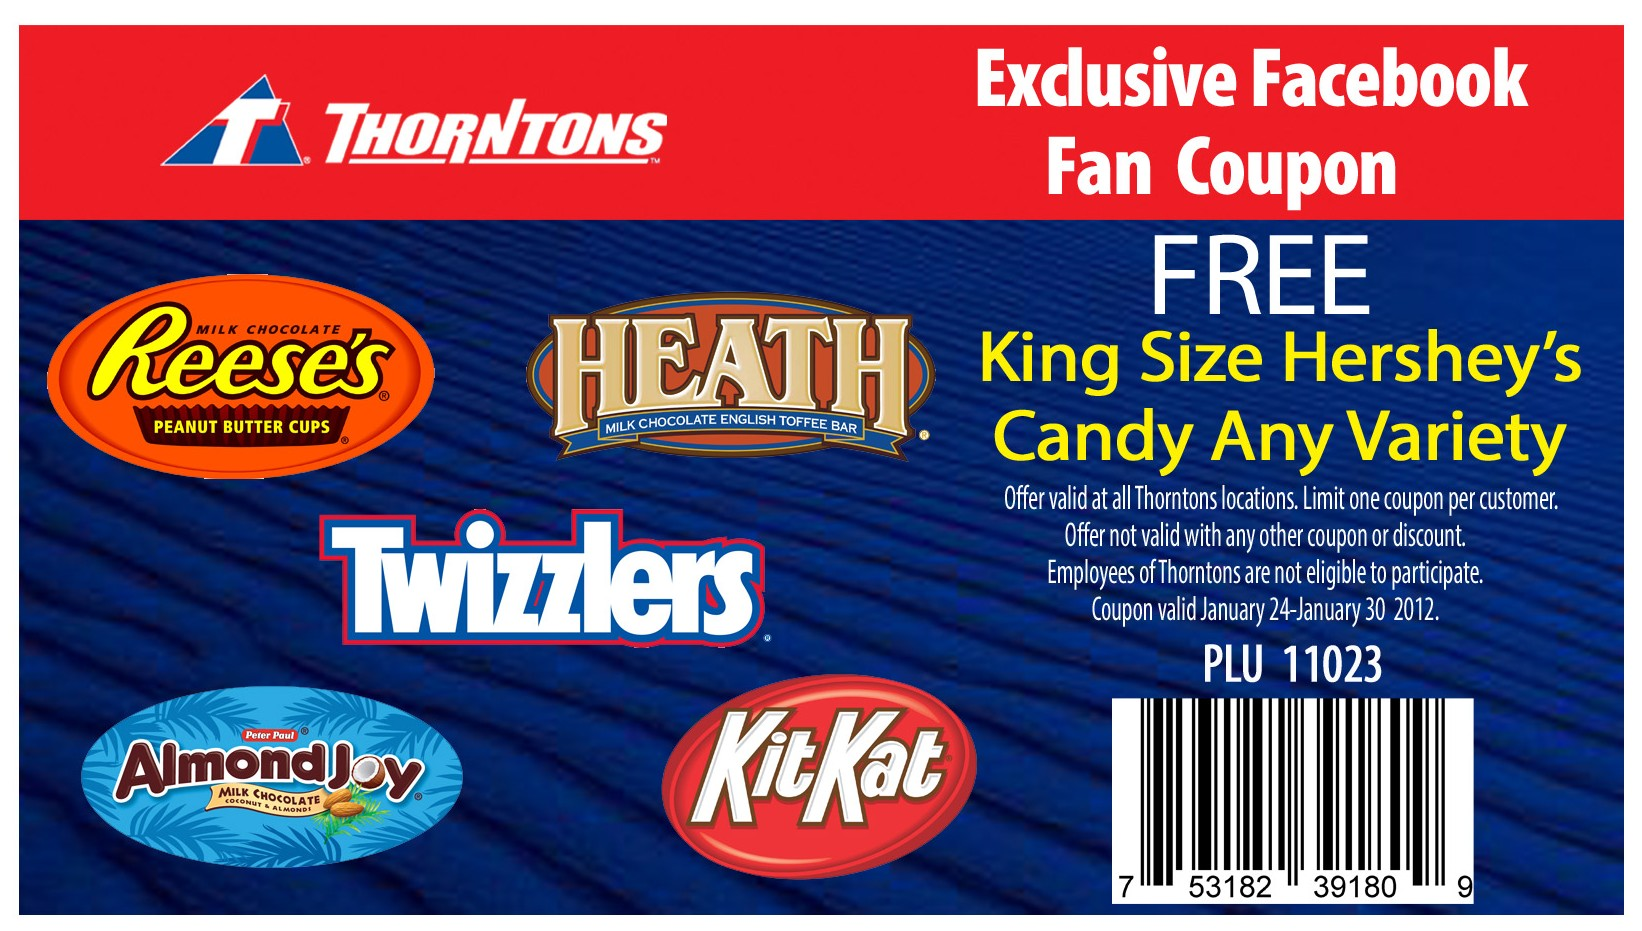 Save up to 10% with these current Thorntons coupons for November The latest downbupnwh.ga coupon codes at CouponFollow.